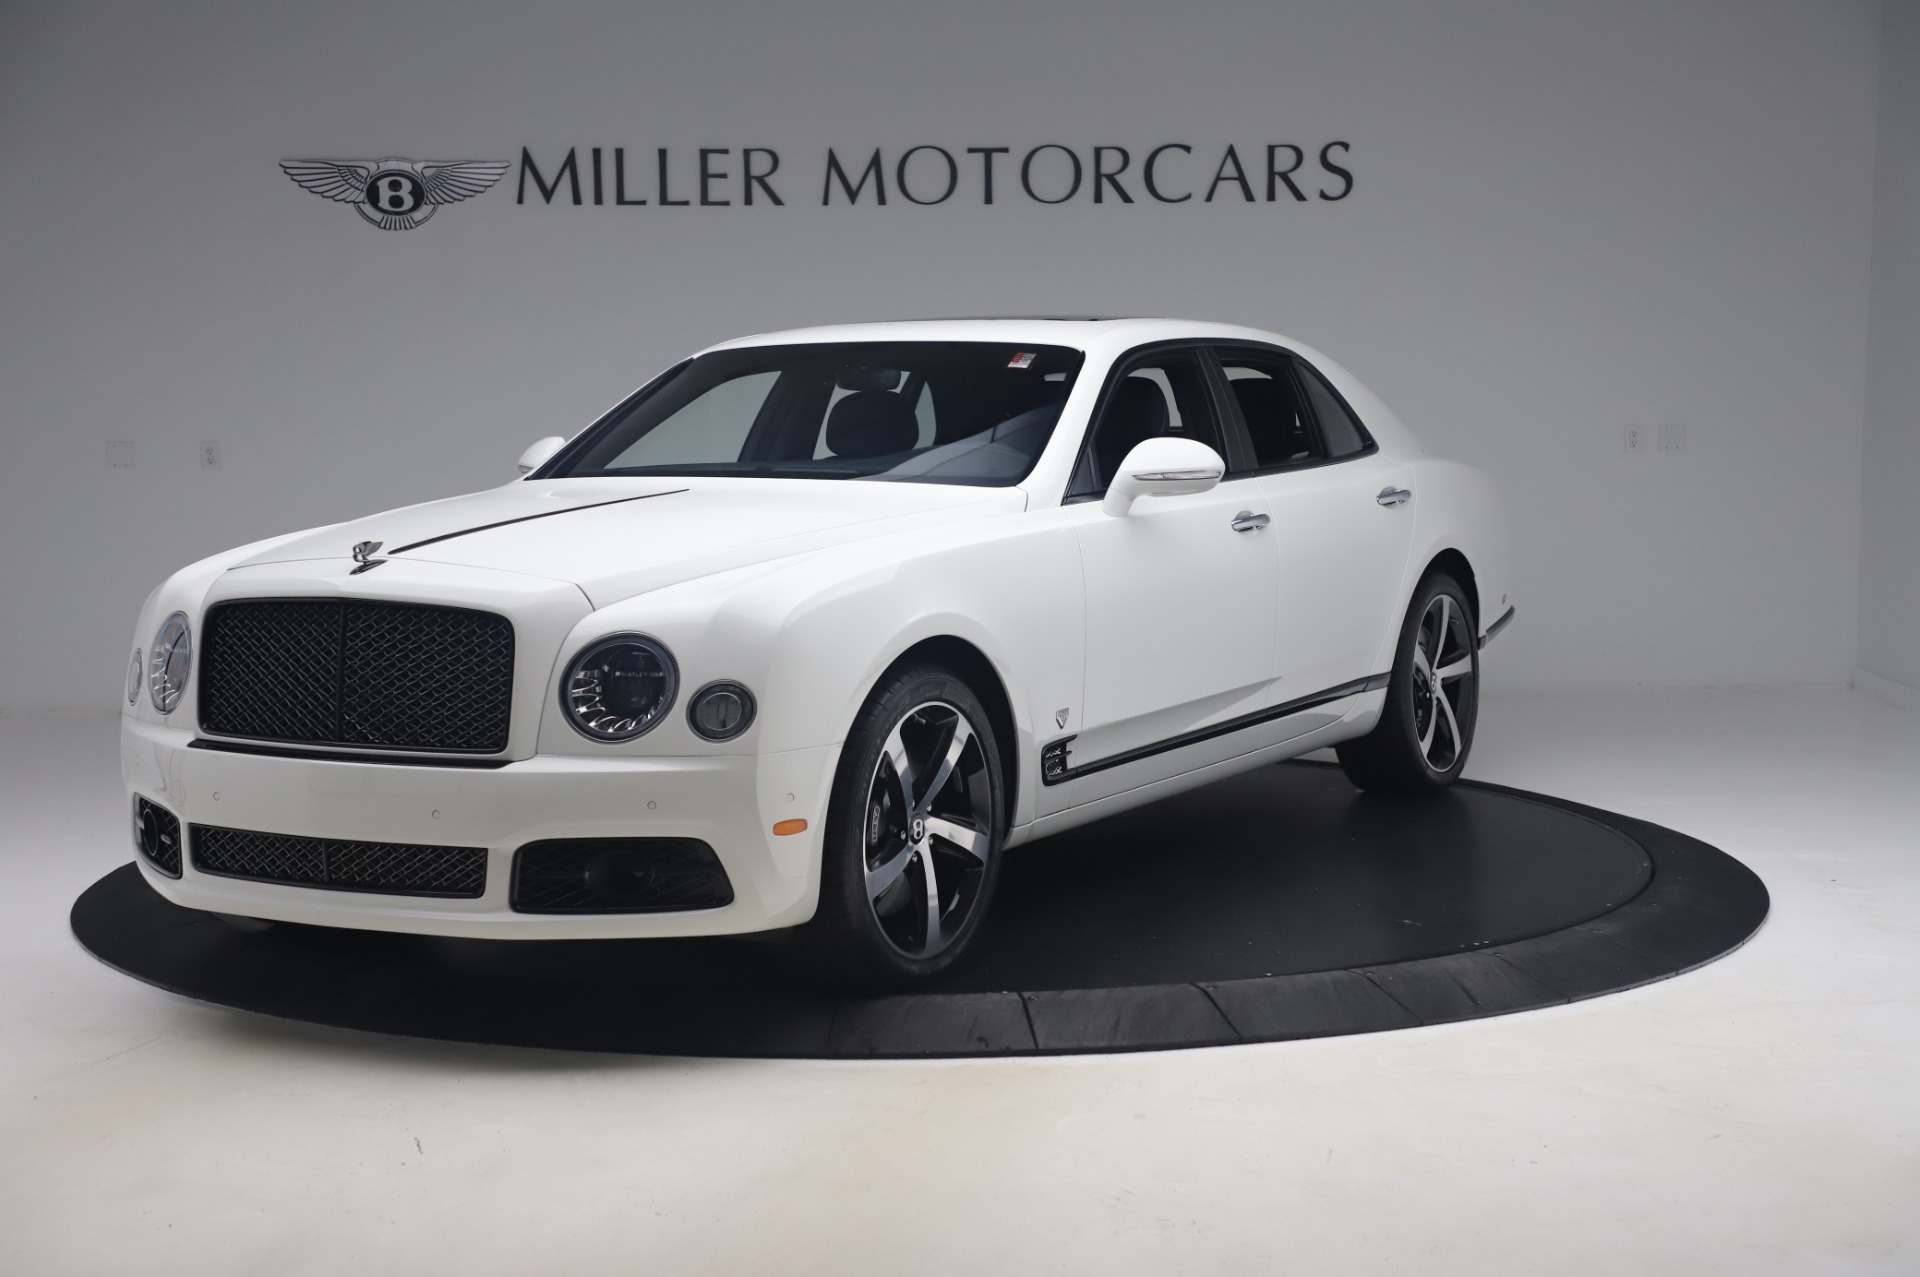 New 2020 Bentley Mulsanne 6.75 Edition by Mulliner for sale $363,840 at Bugatti of Greenwich in Greenwich CT 06830 1